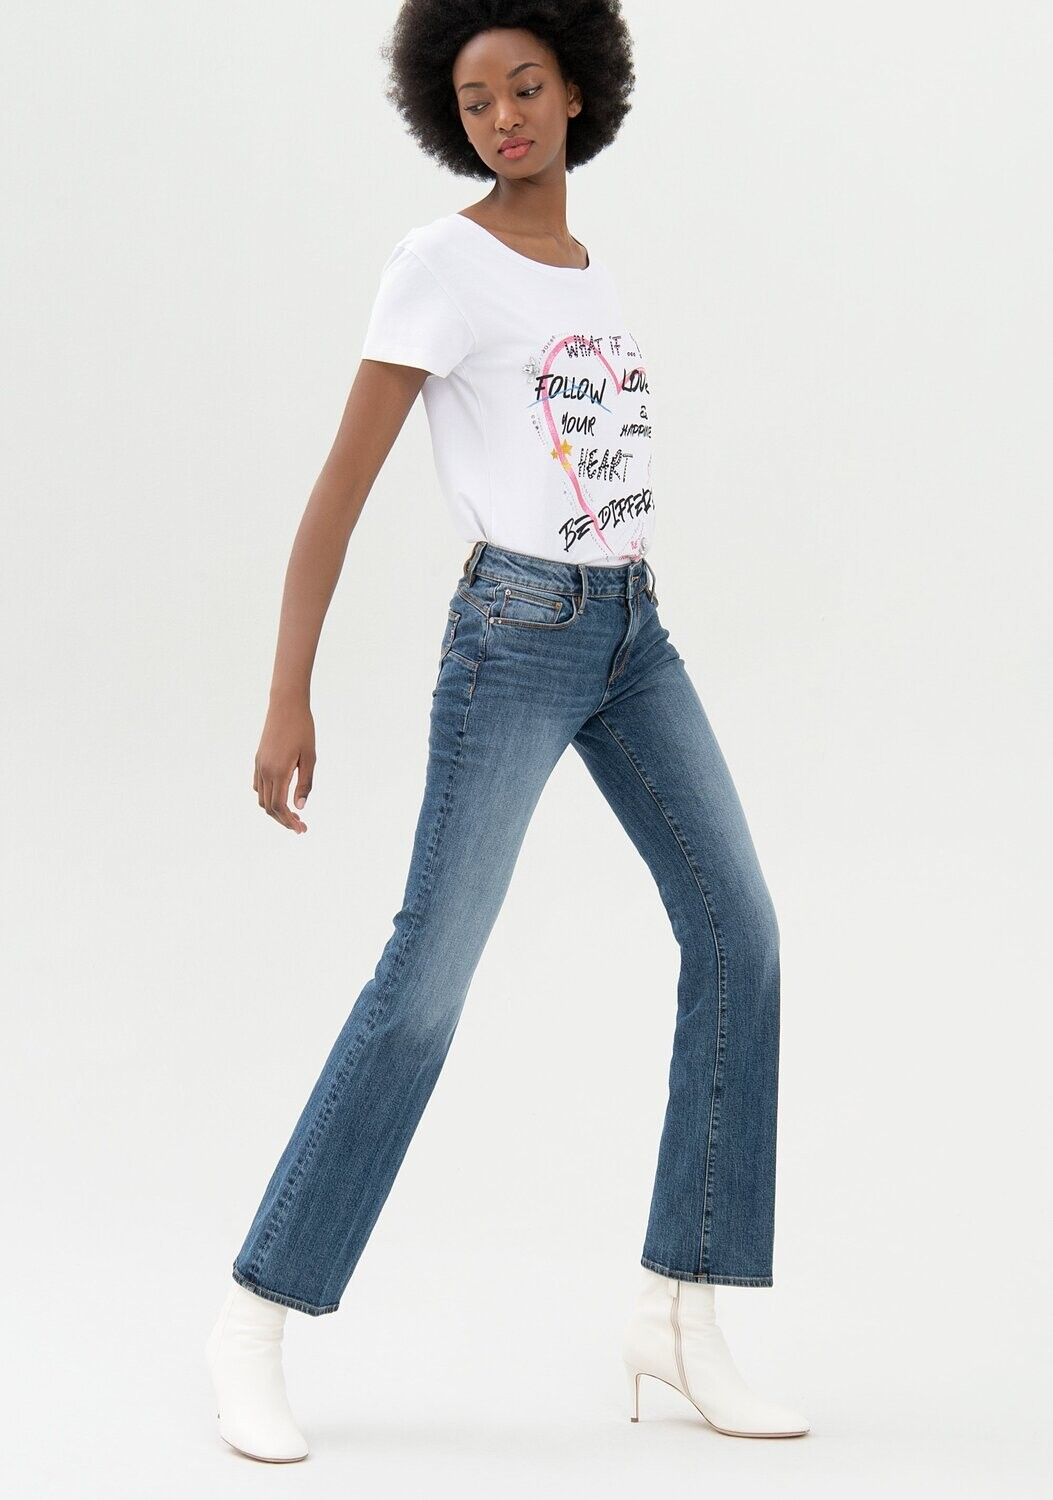 Jeans Bella perfect bootcut shape up